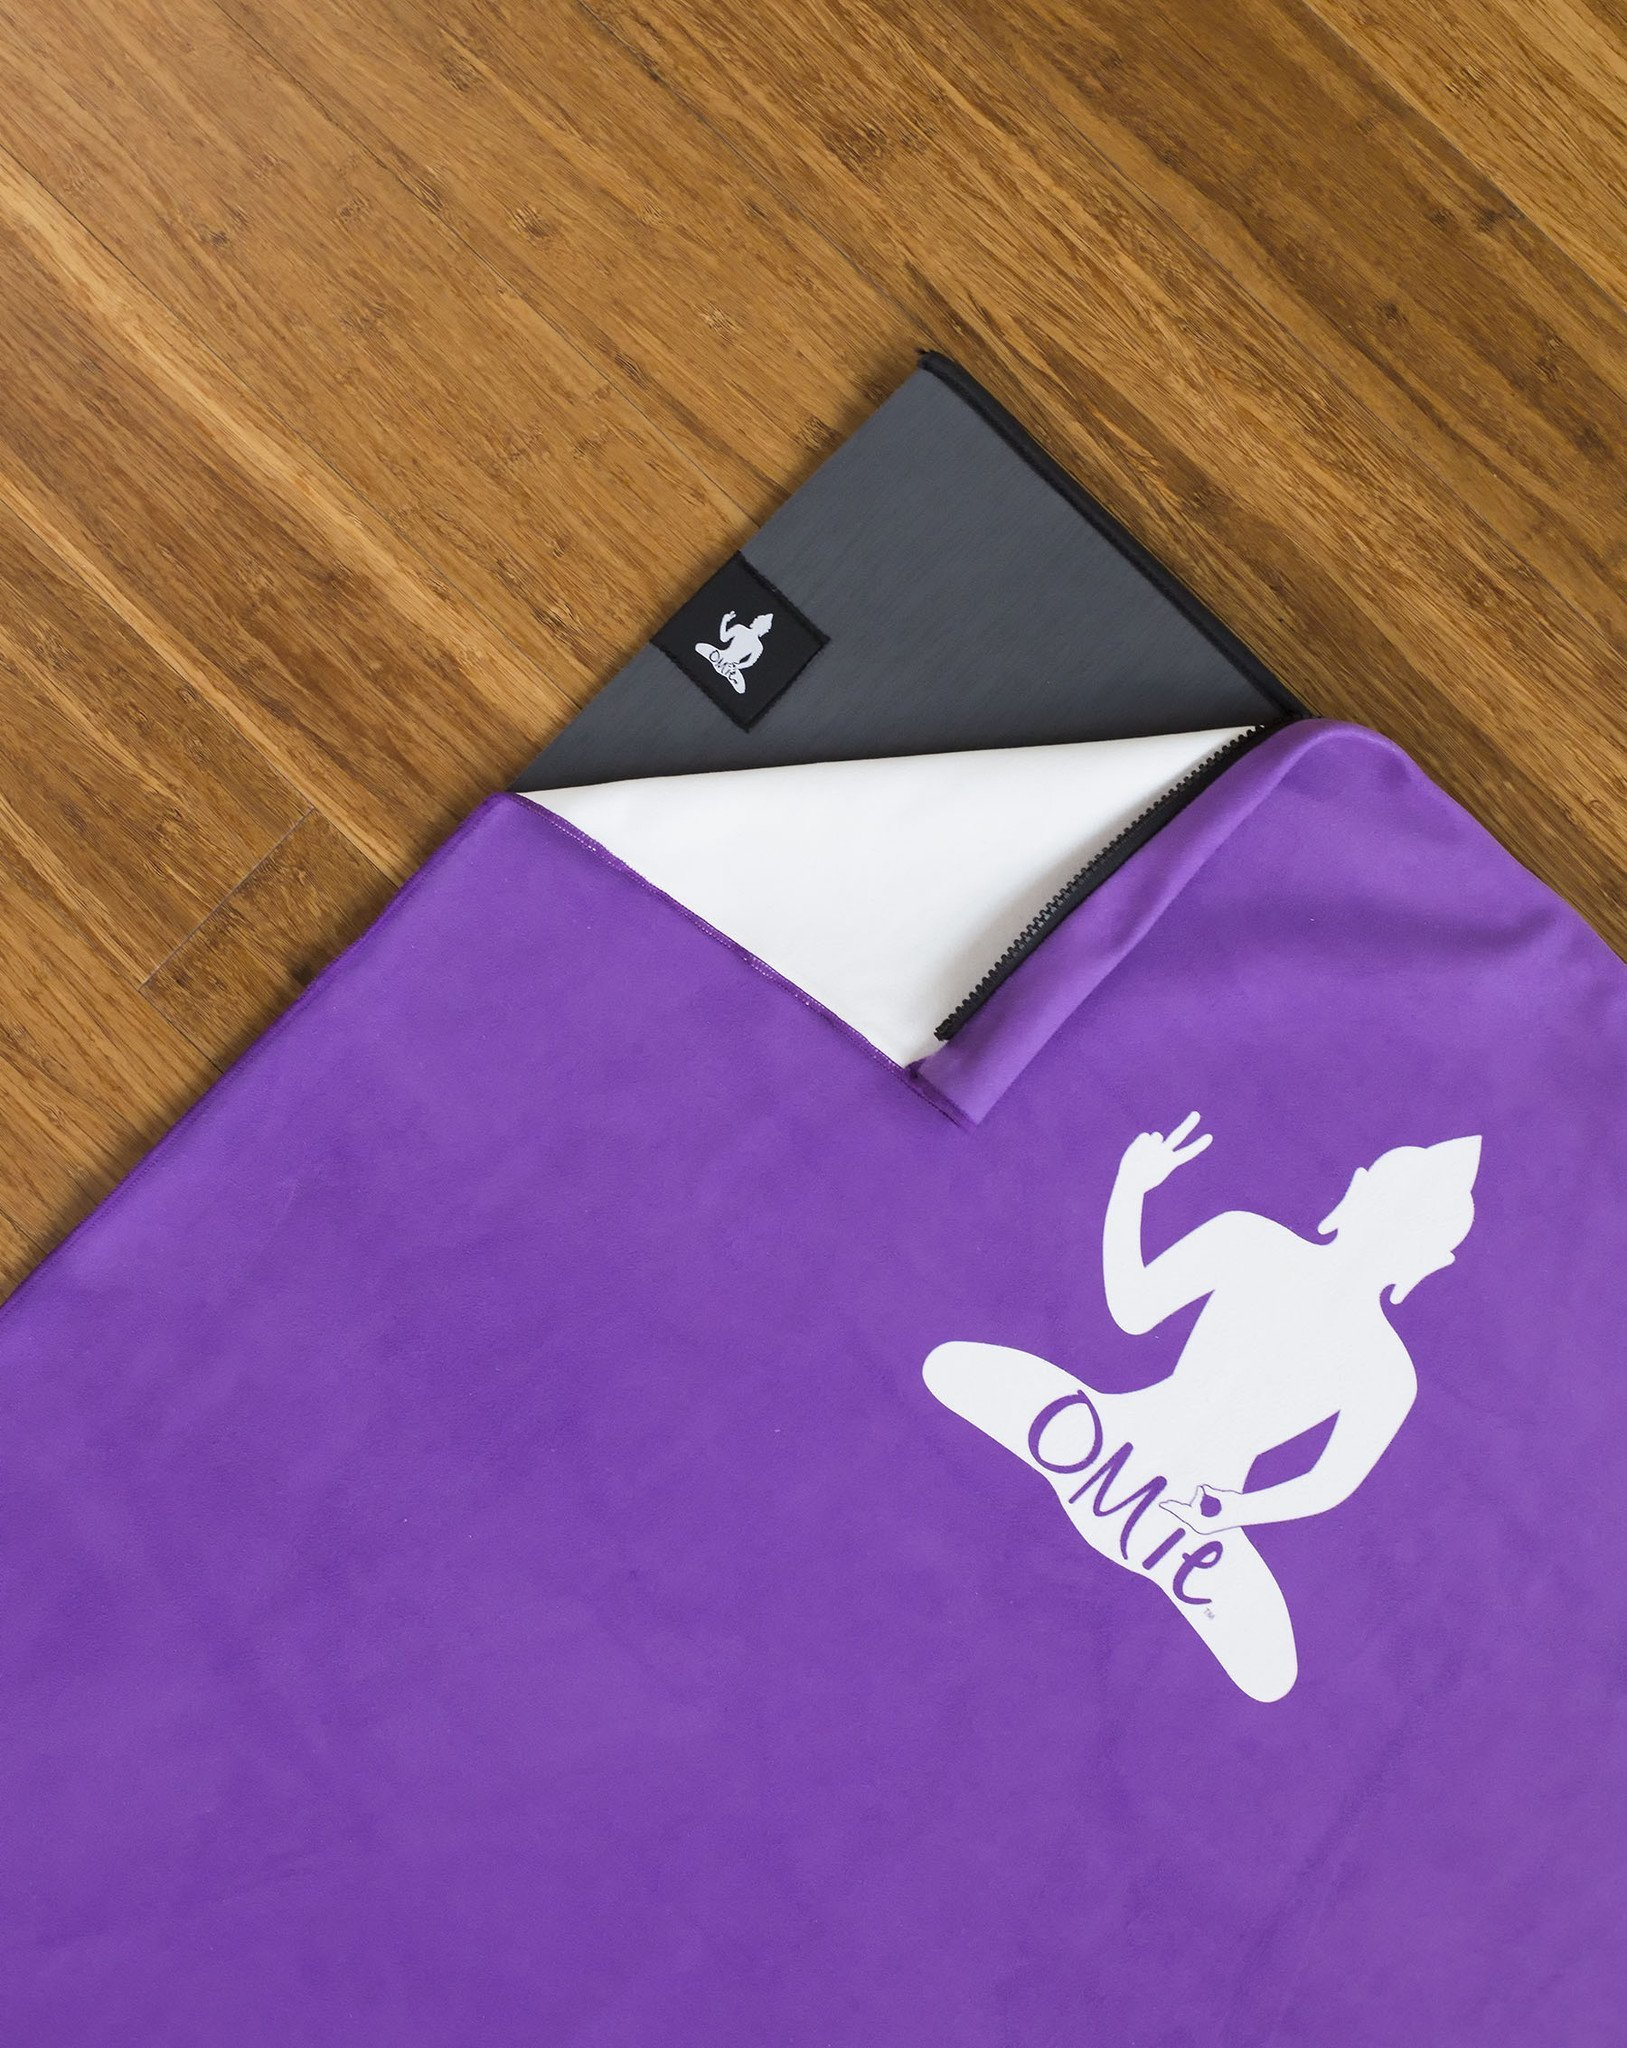 OMie Yoga mat with zip-on towel.